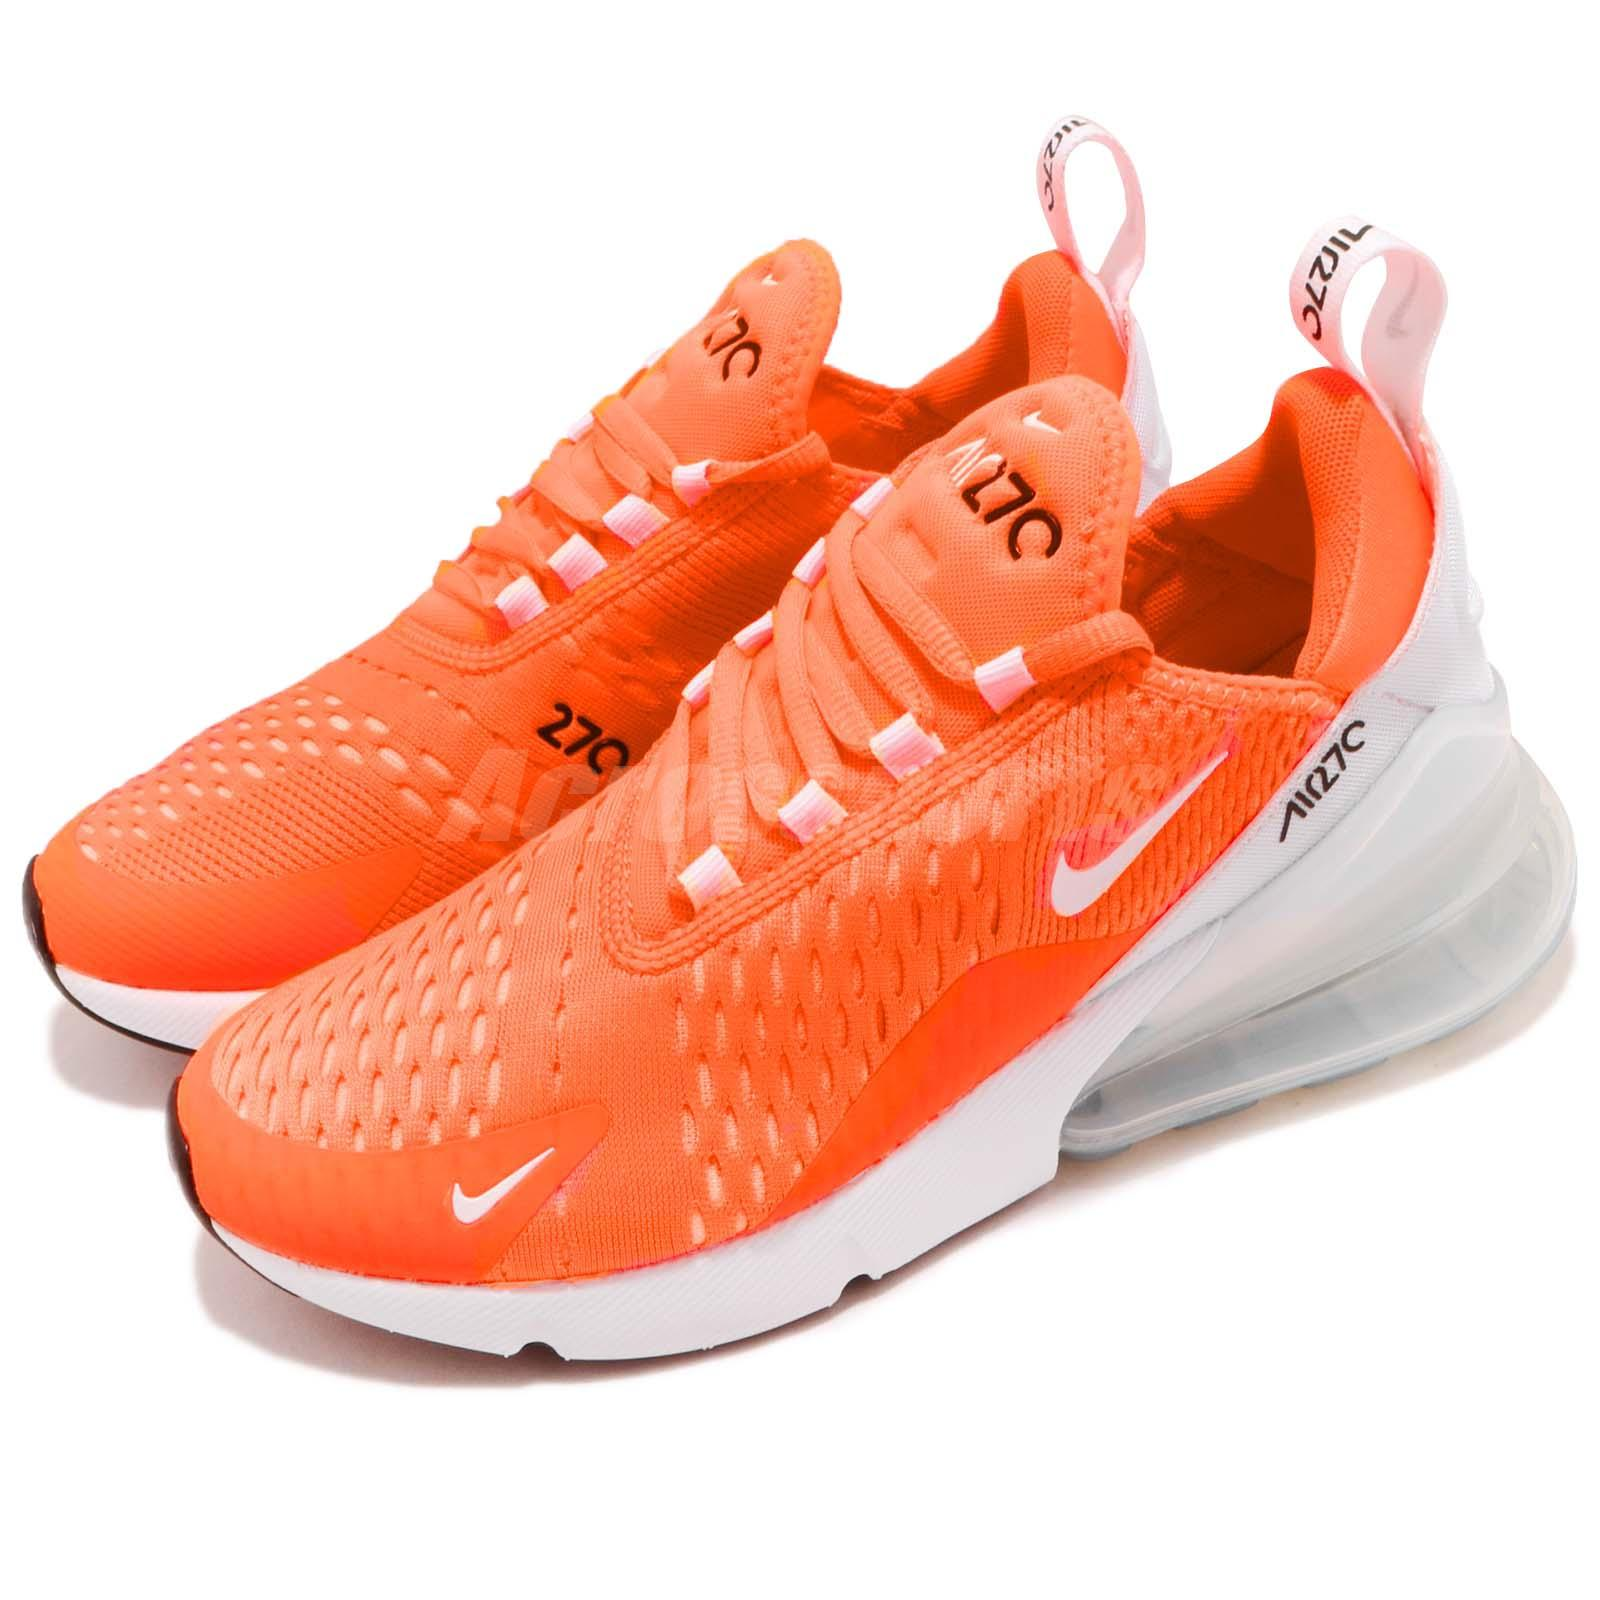 2934c39996d8e Details about Nike Wmns Air Max 270 Total Orange White Women Running Shoes  Sneakers AH6789-800